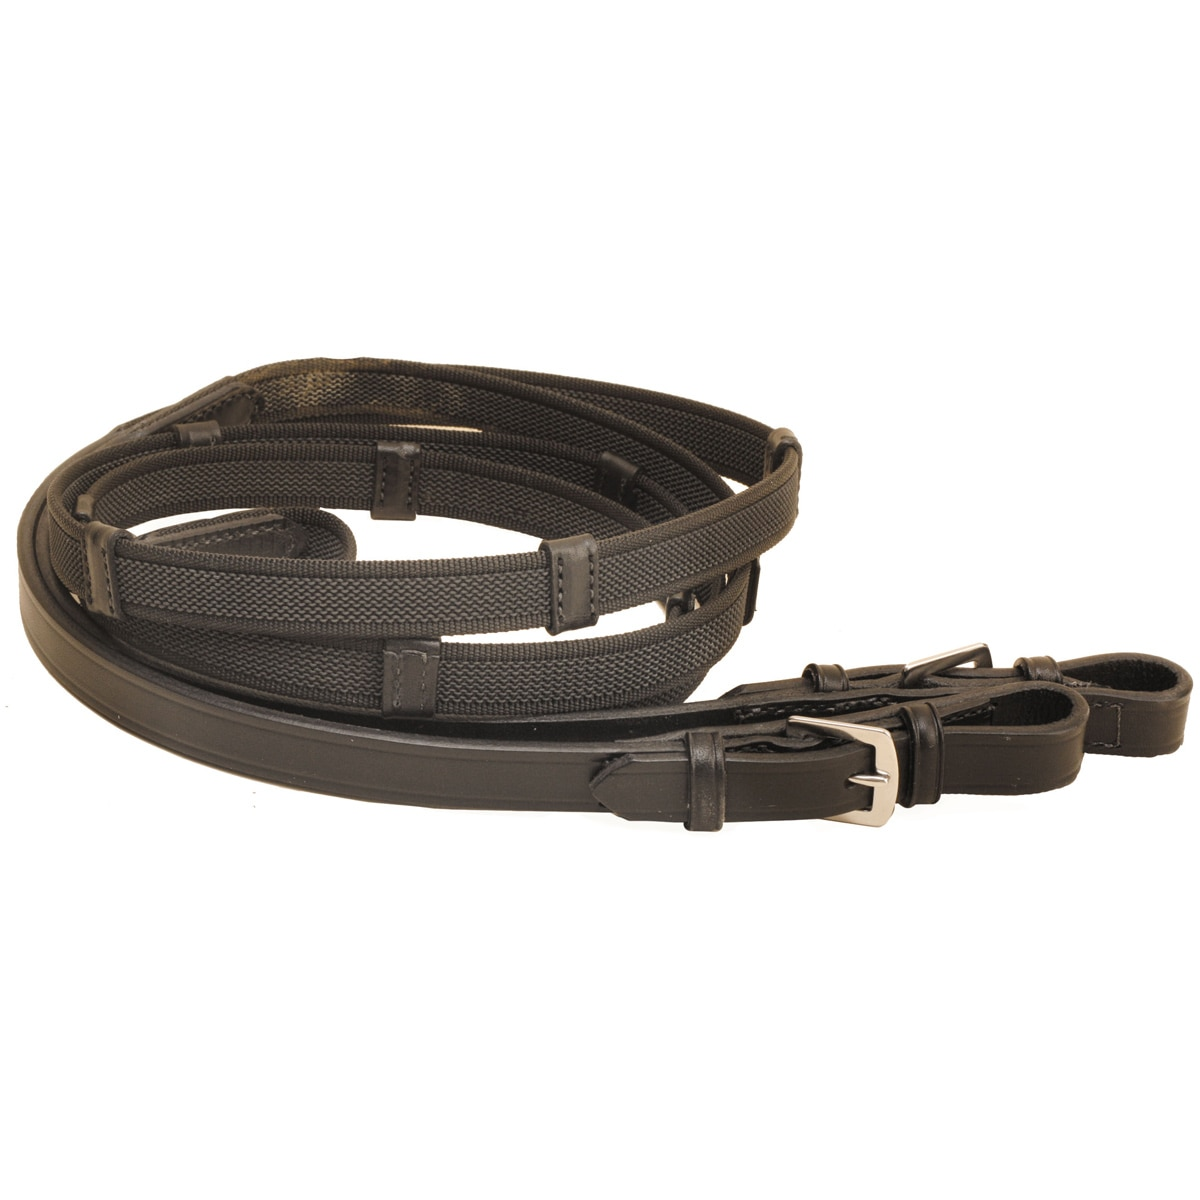 Tory Leather Rubber Web Reins